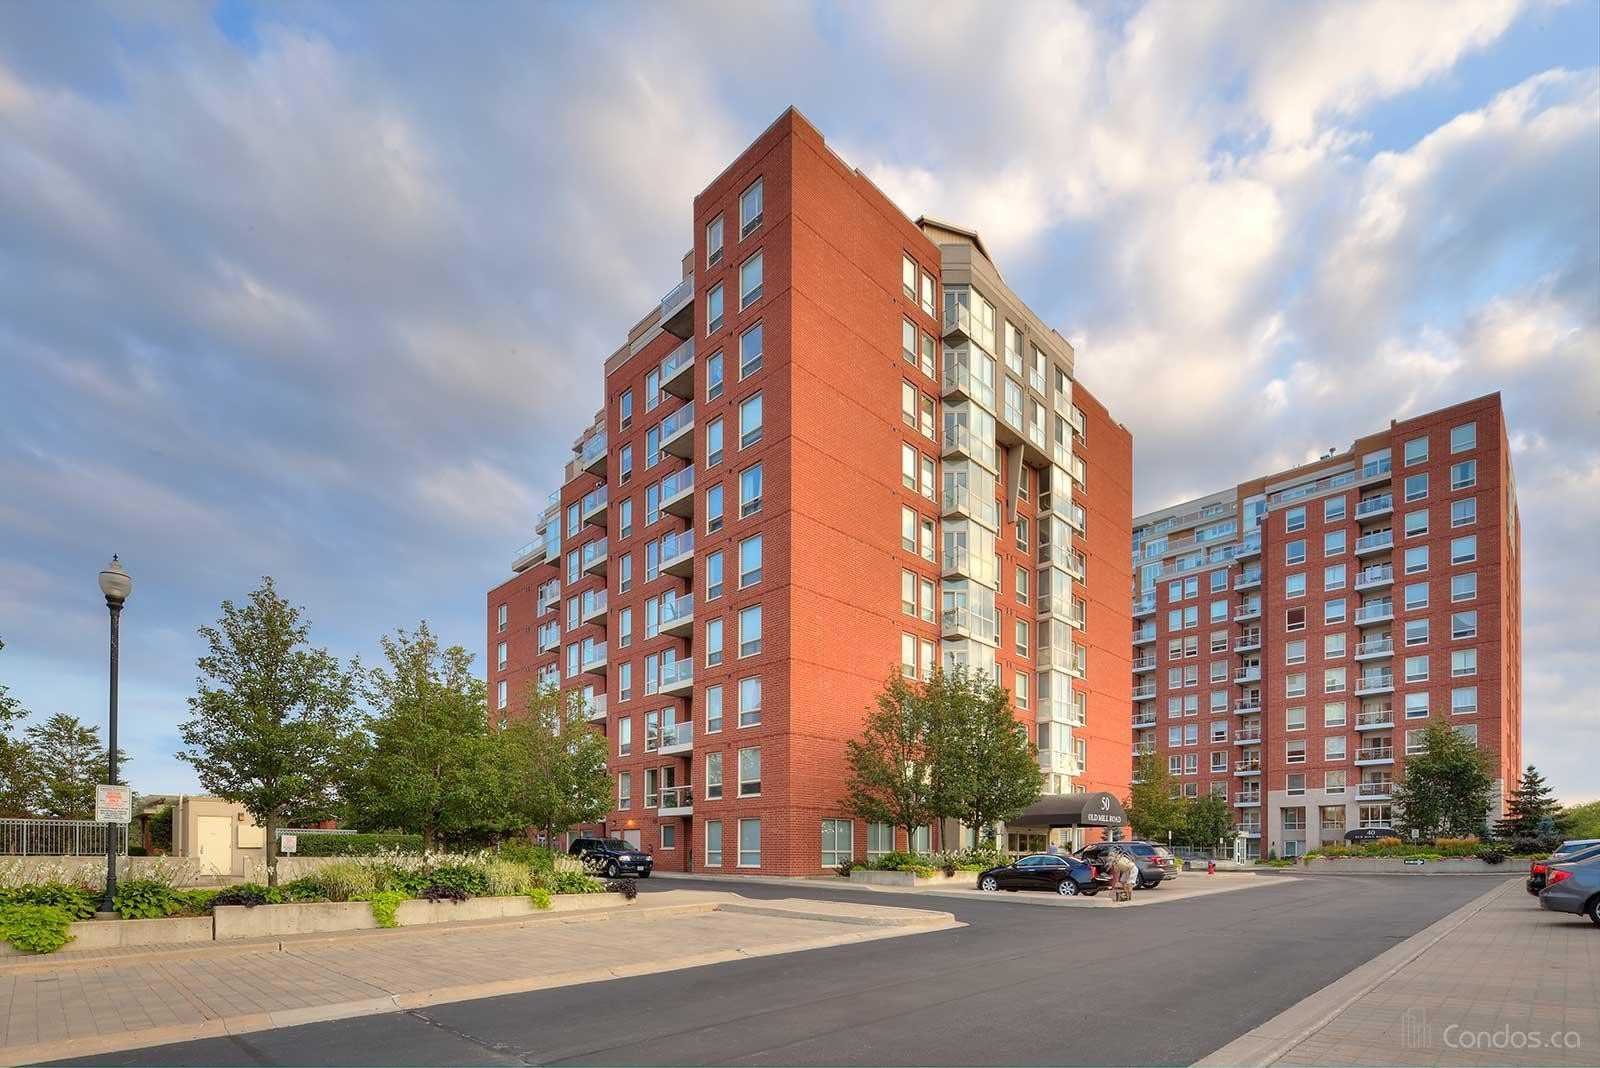 50 Old Mill Rd, Oakville, L6J7W1, 1 Bedroom Bedrooms, ,1 BathroomBathrooms,For Sale,Old Mill,W4676203